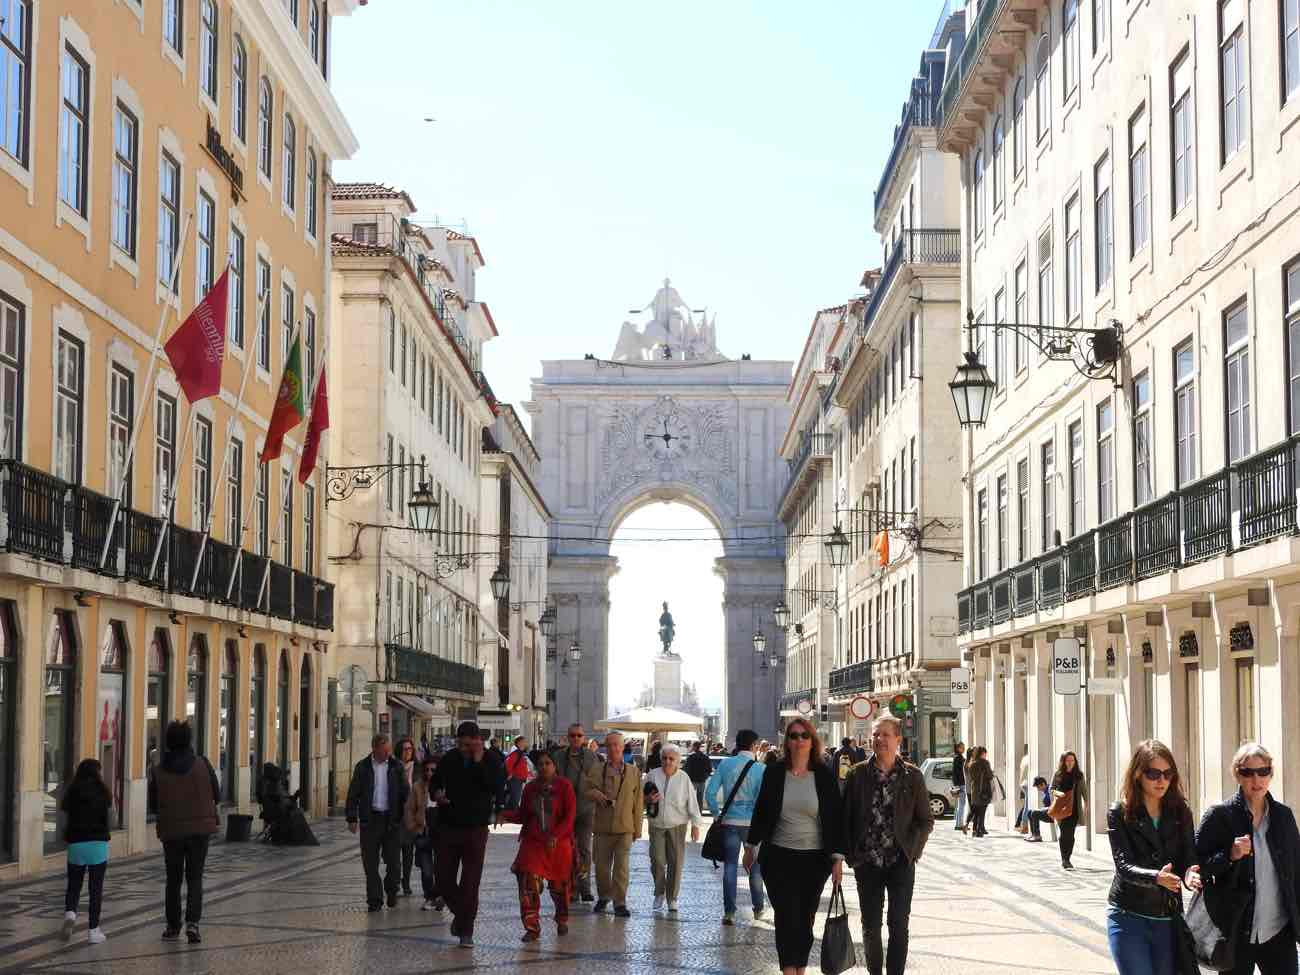 lisbon itinerary 3 days baixa lisboa what to see and do lisbon